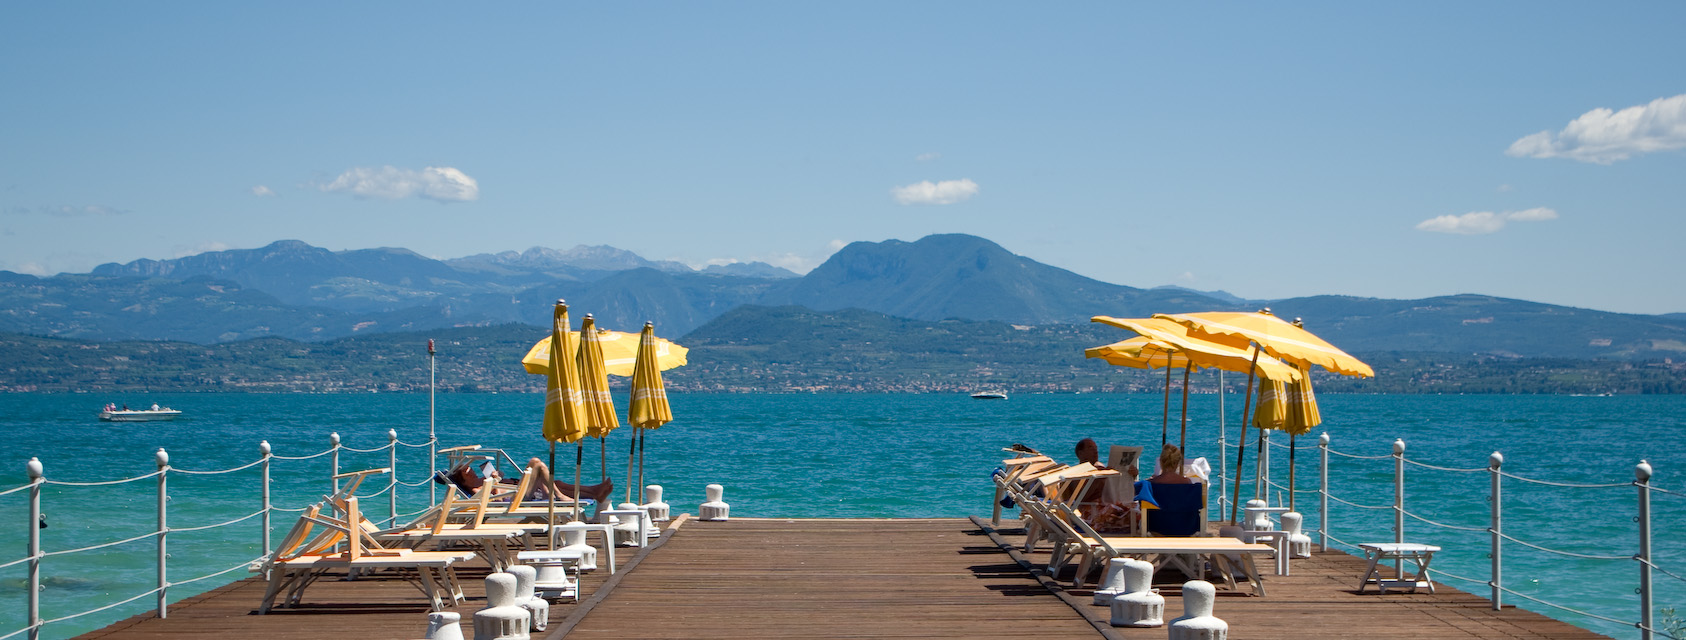 Terrace of a luxury hotel at the northern tip of Sirmione